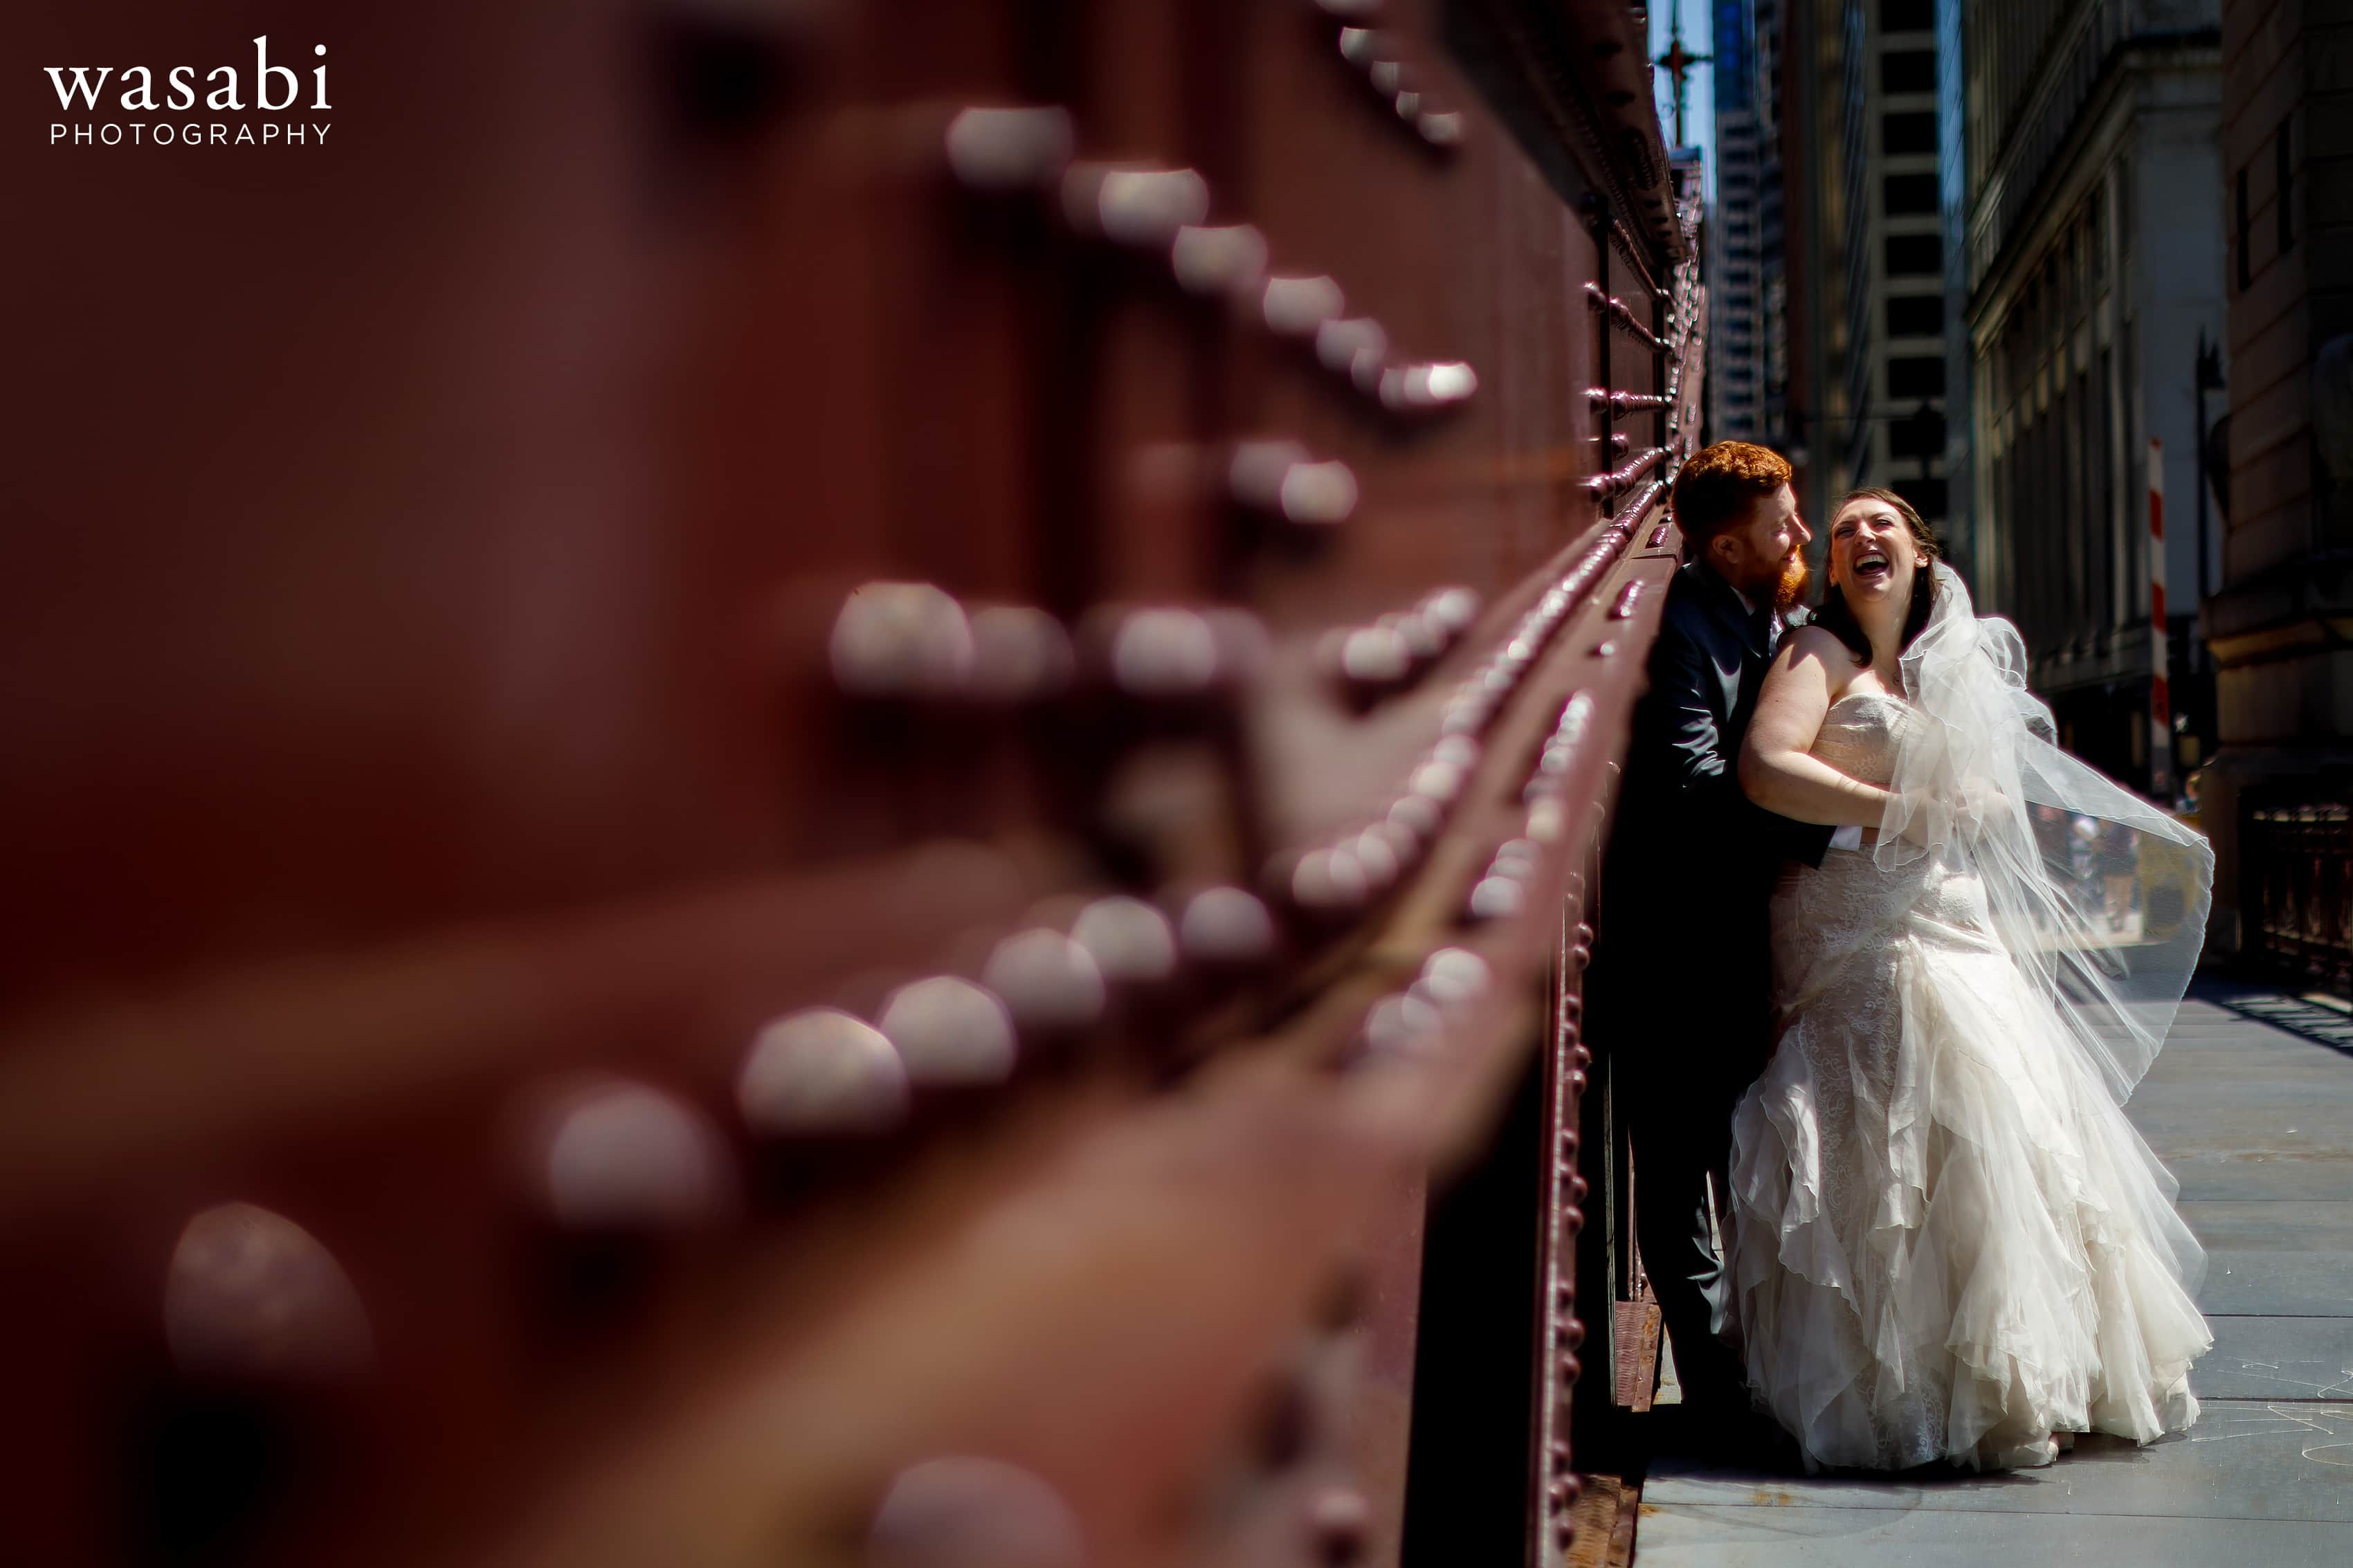 A bride and groom pose for a portrait on the La Salle Street Bridge in Chicago